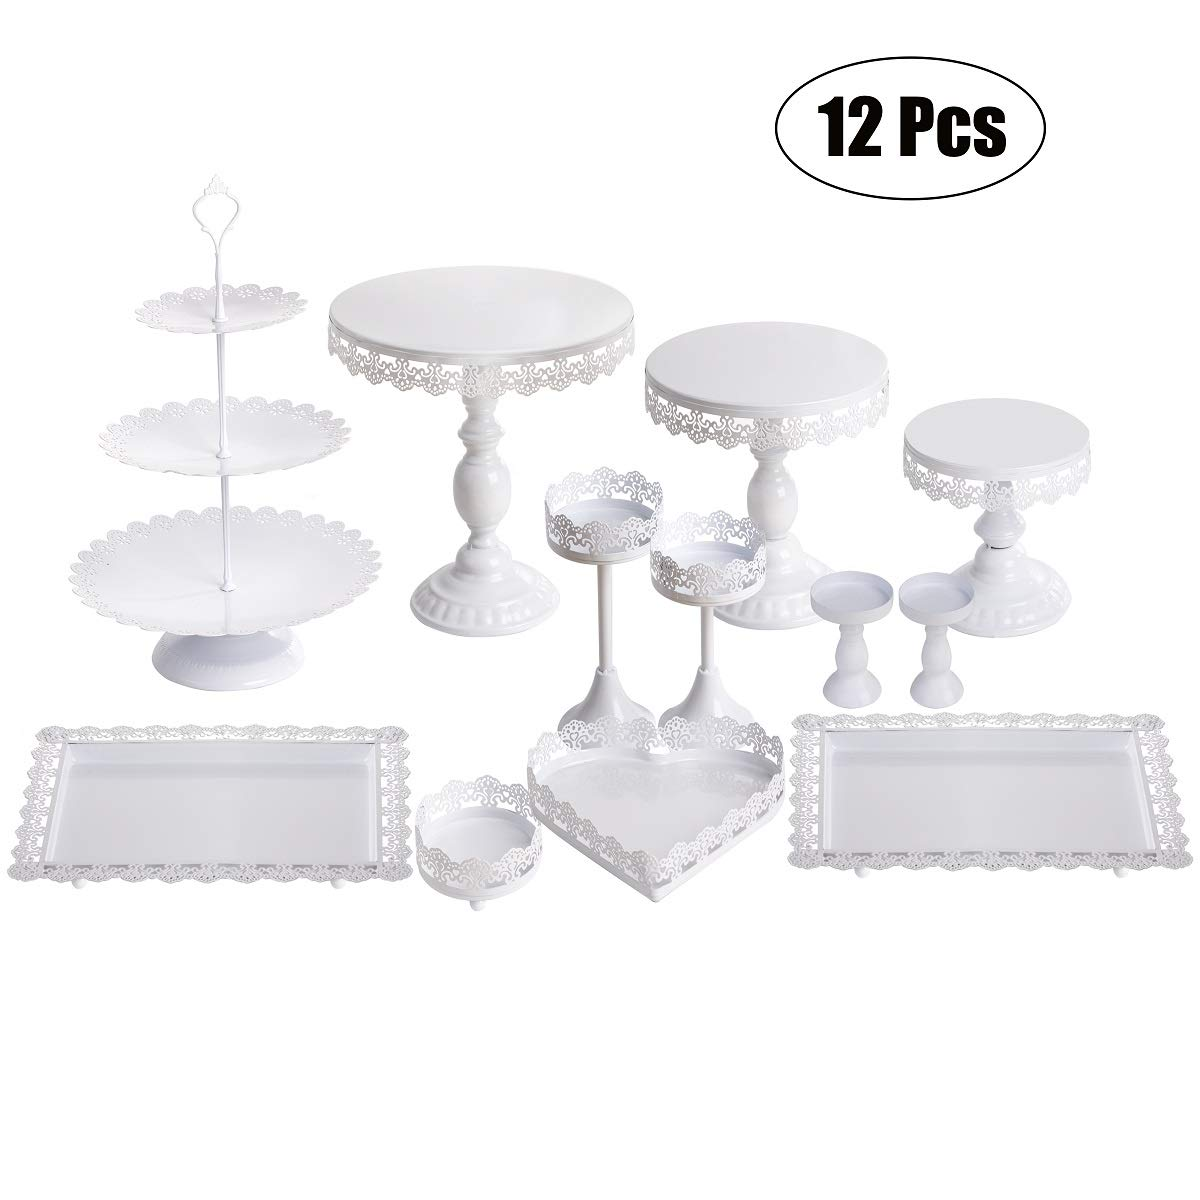 Set of 12 Pieces White Cake Stand and Pastry Trays Metal Cupcake Holder Fruits Dessert Display Plate for Baby Shower Wedding Birthday Party Celebration